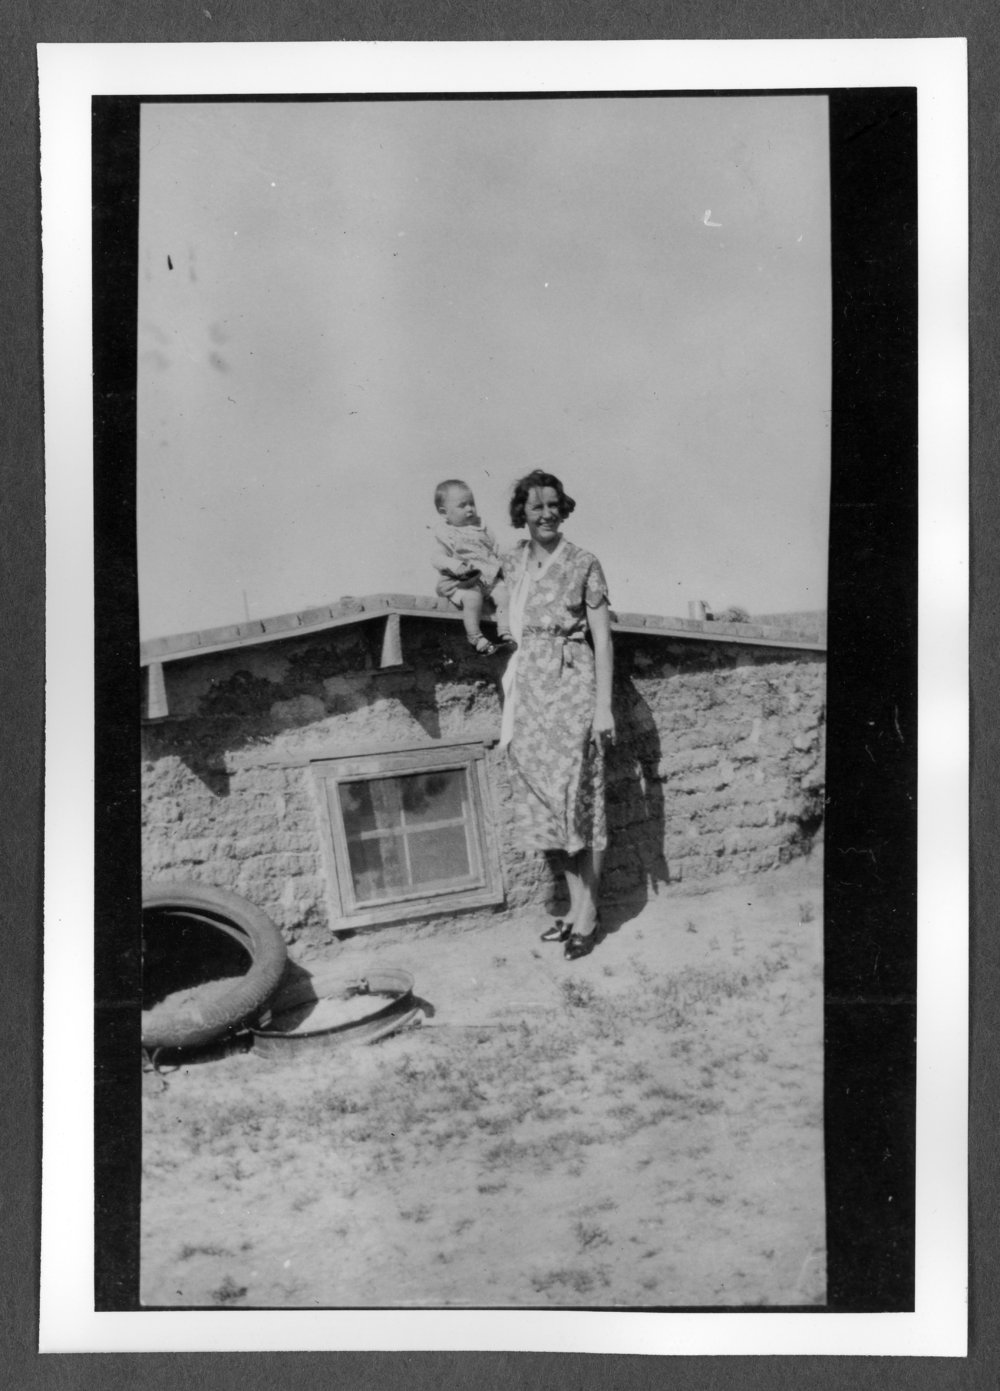 Scenes of Sherman County, Kansas - A photograph of Vida Mather Dillon with her daughter, Mickey.